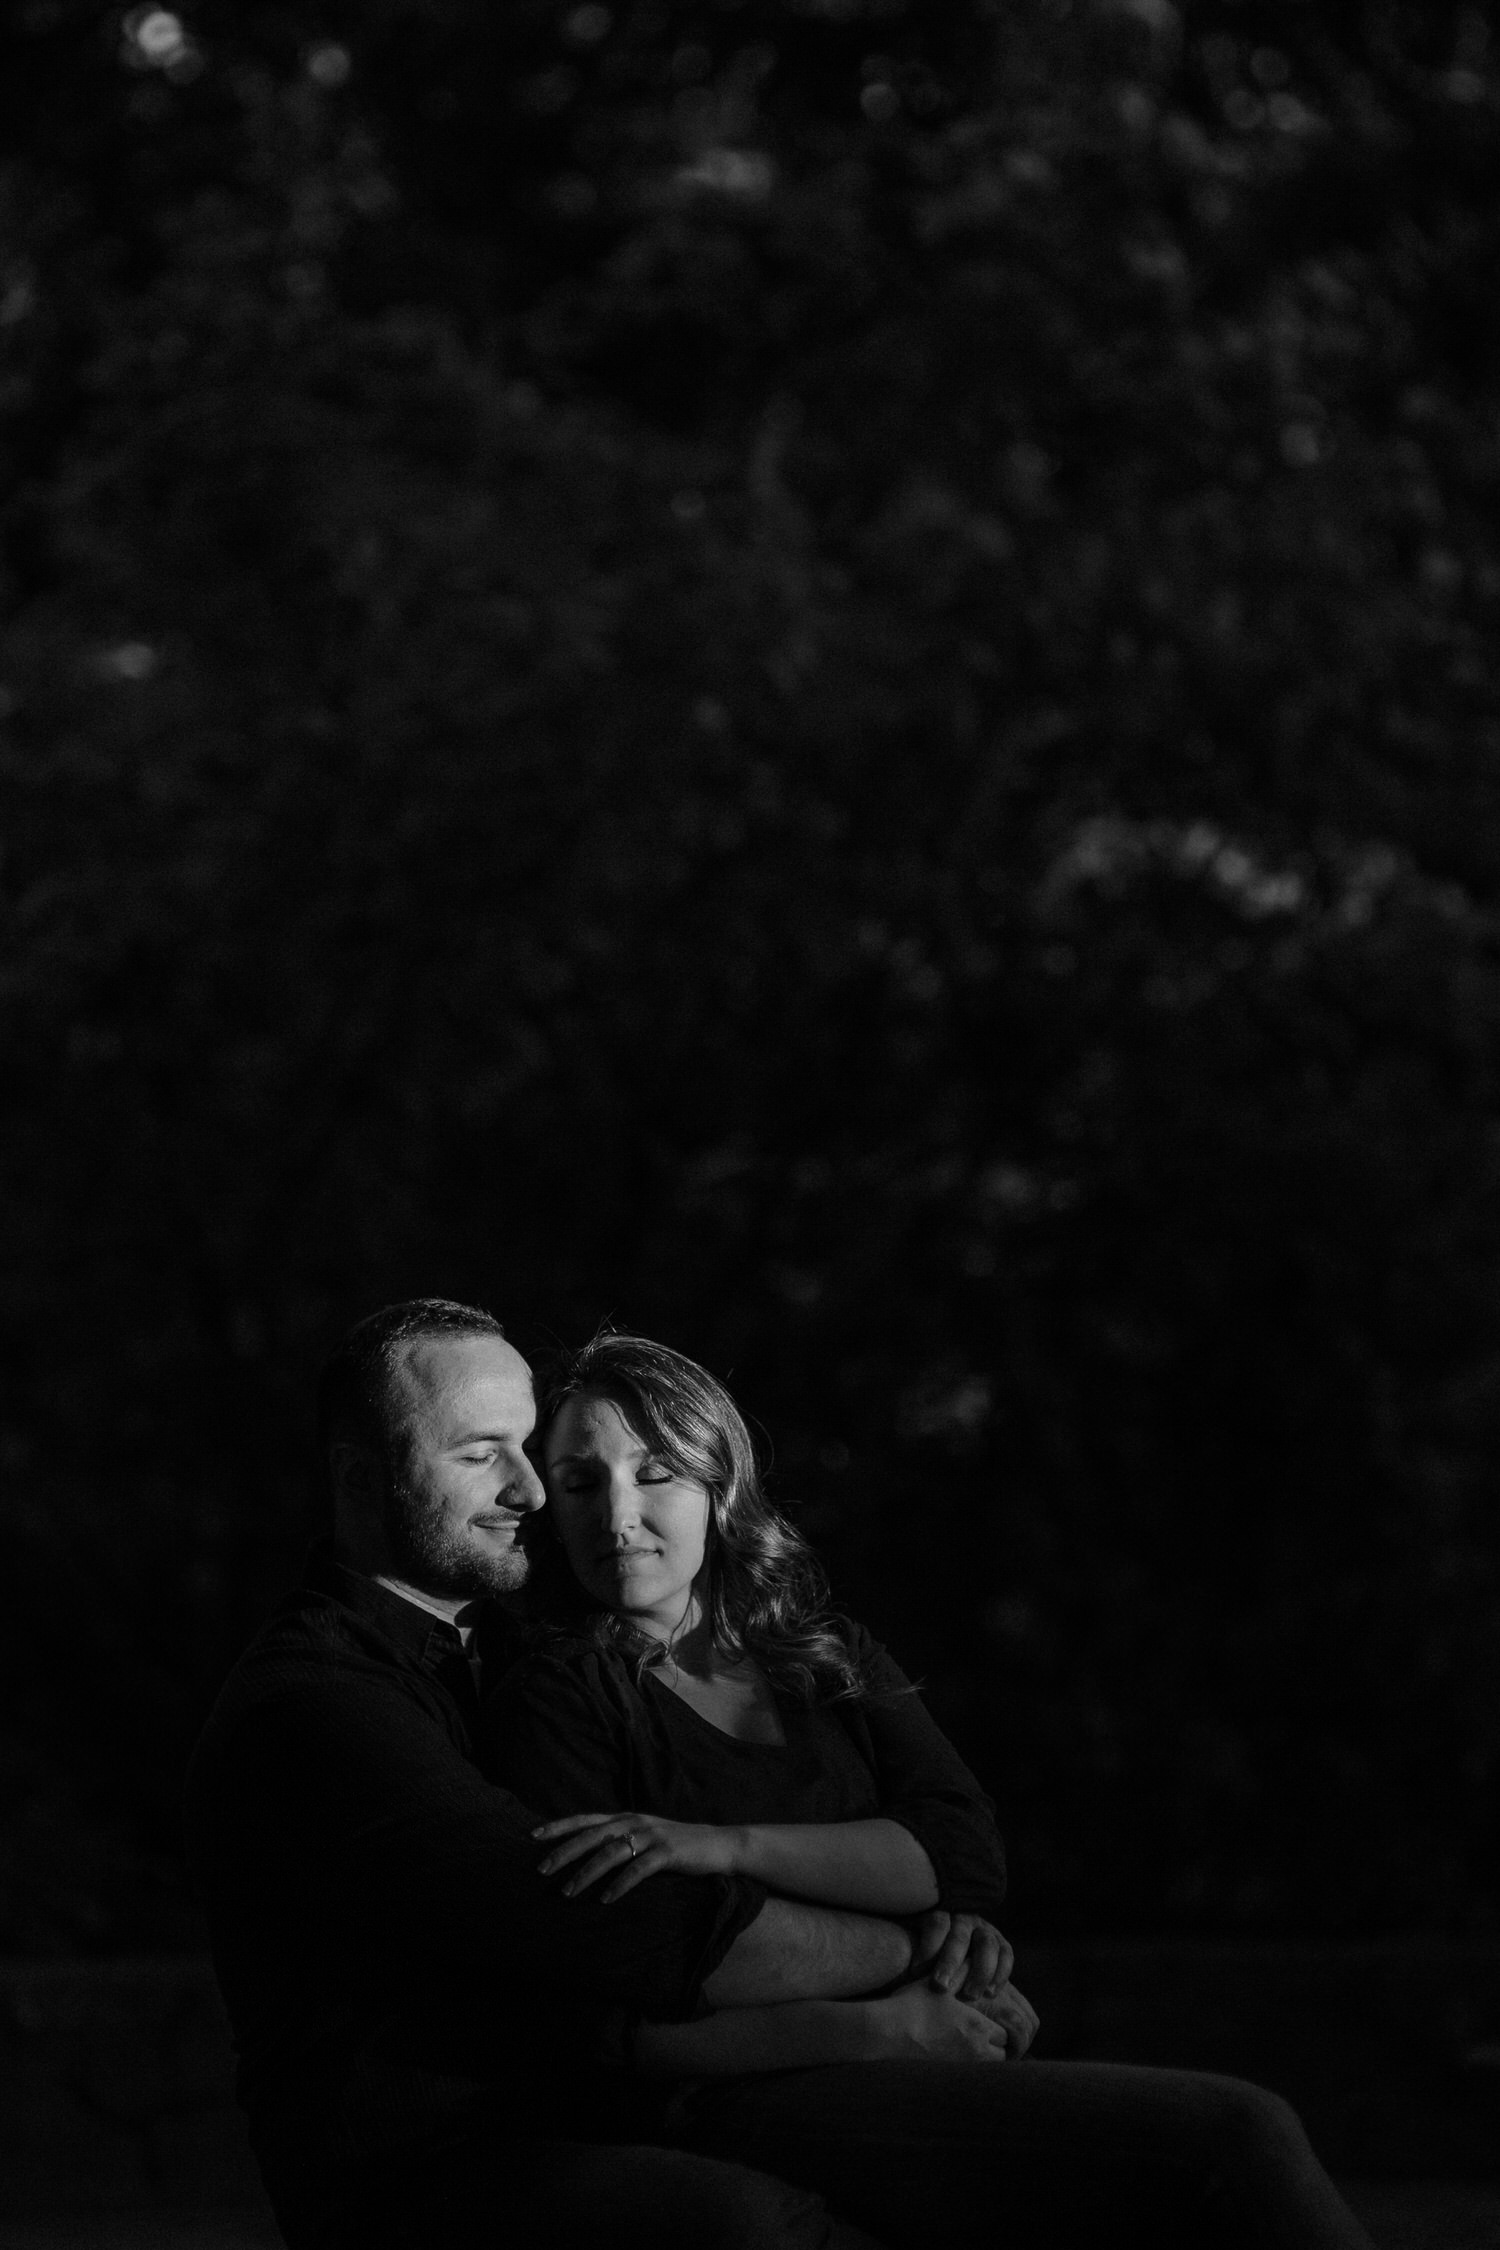 Hoyt Arboretum Engagement session photography Portland oregon 0018.JPG